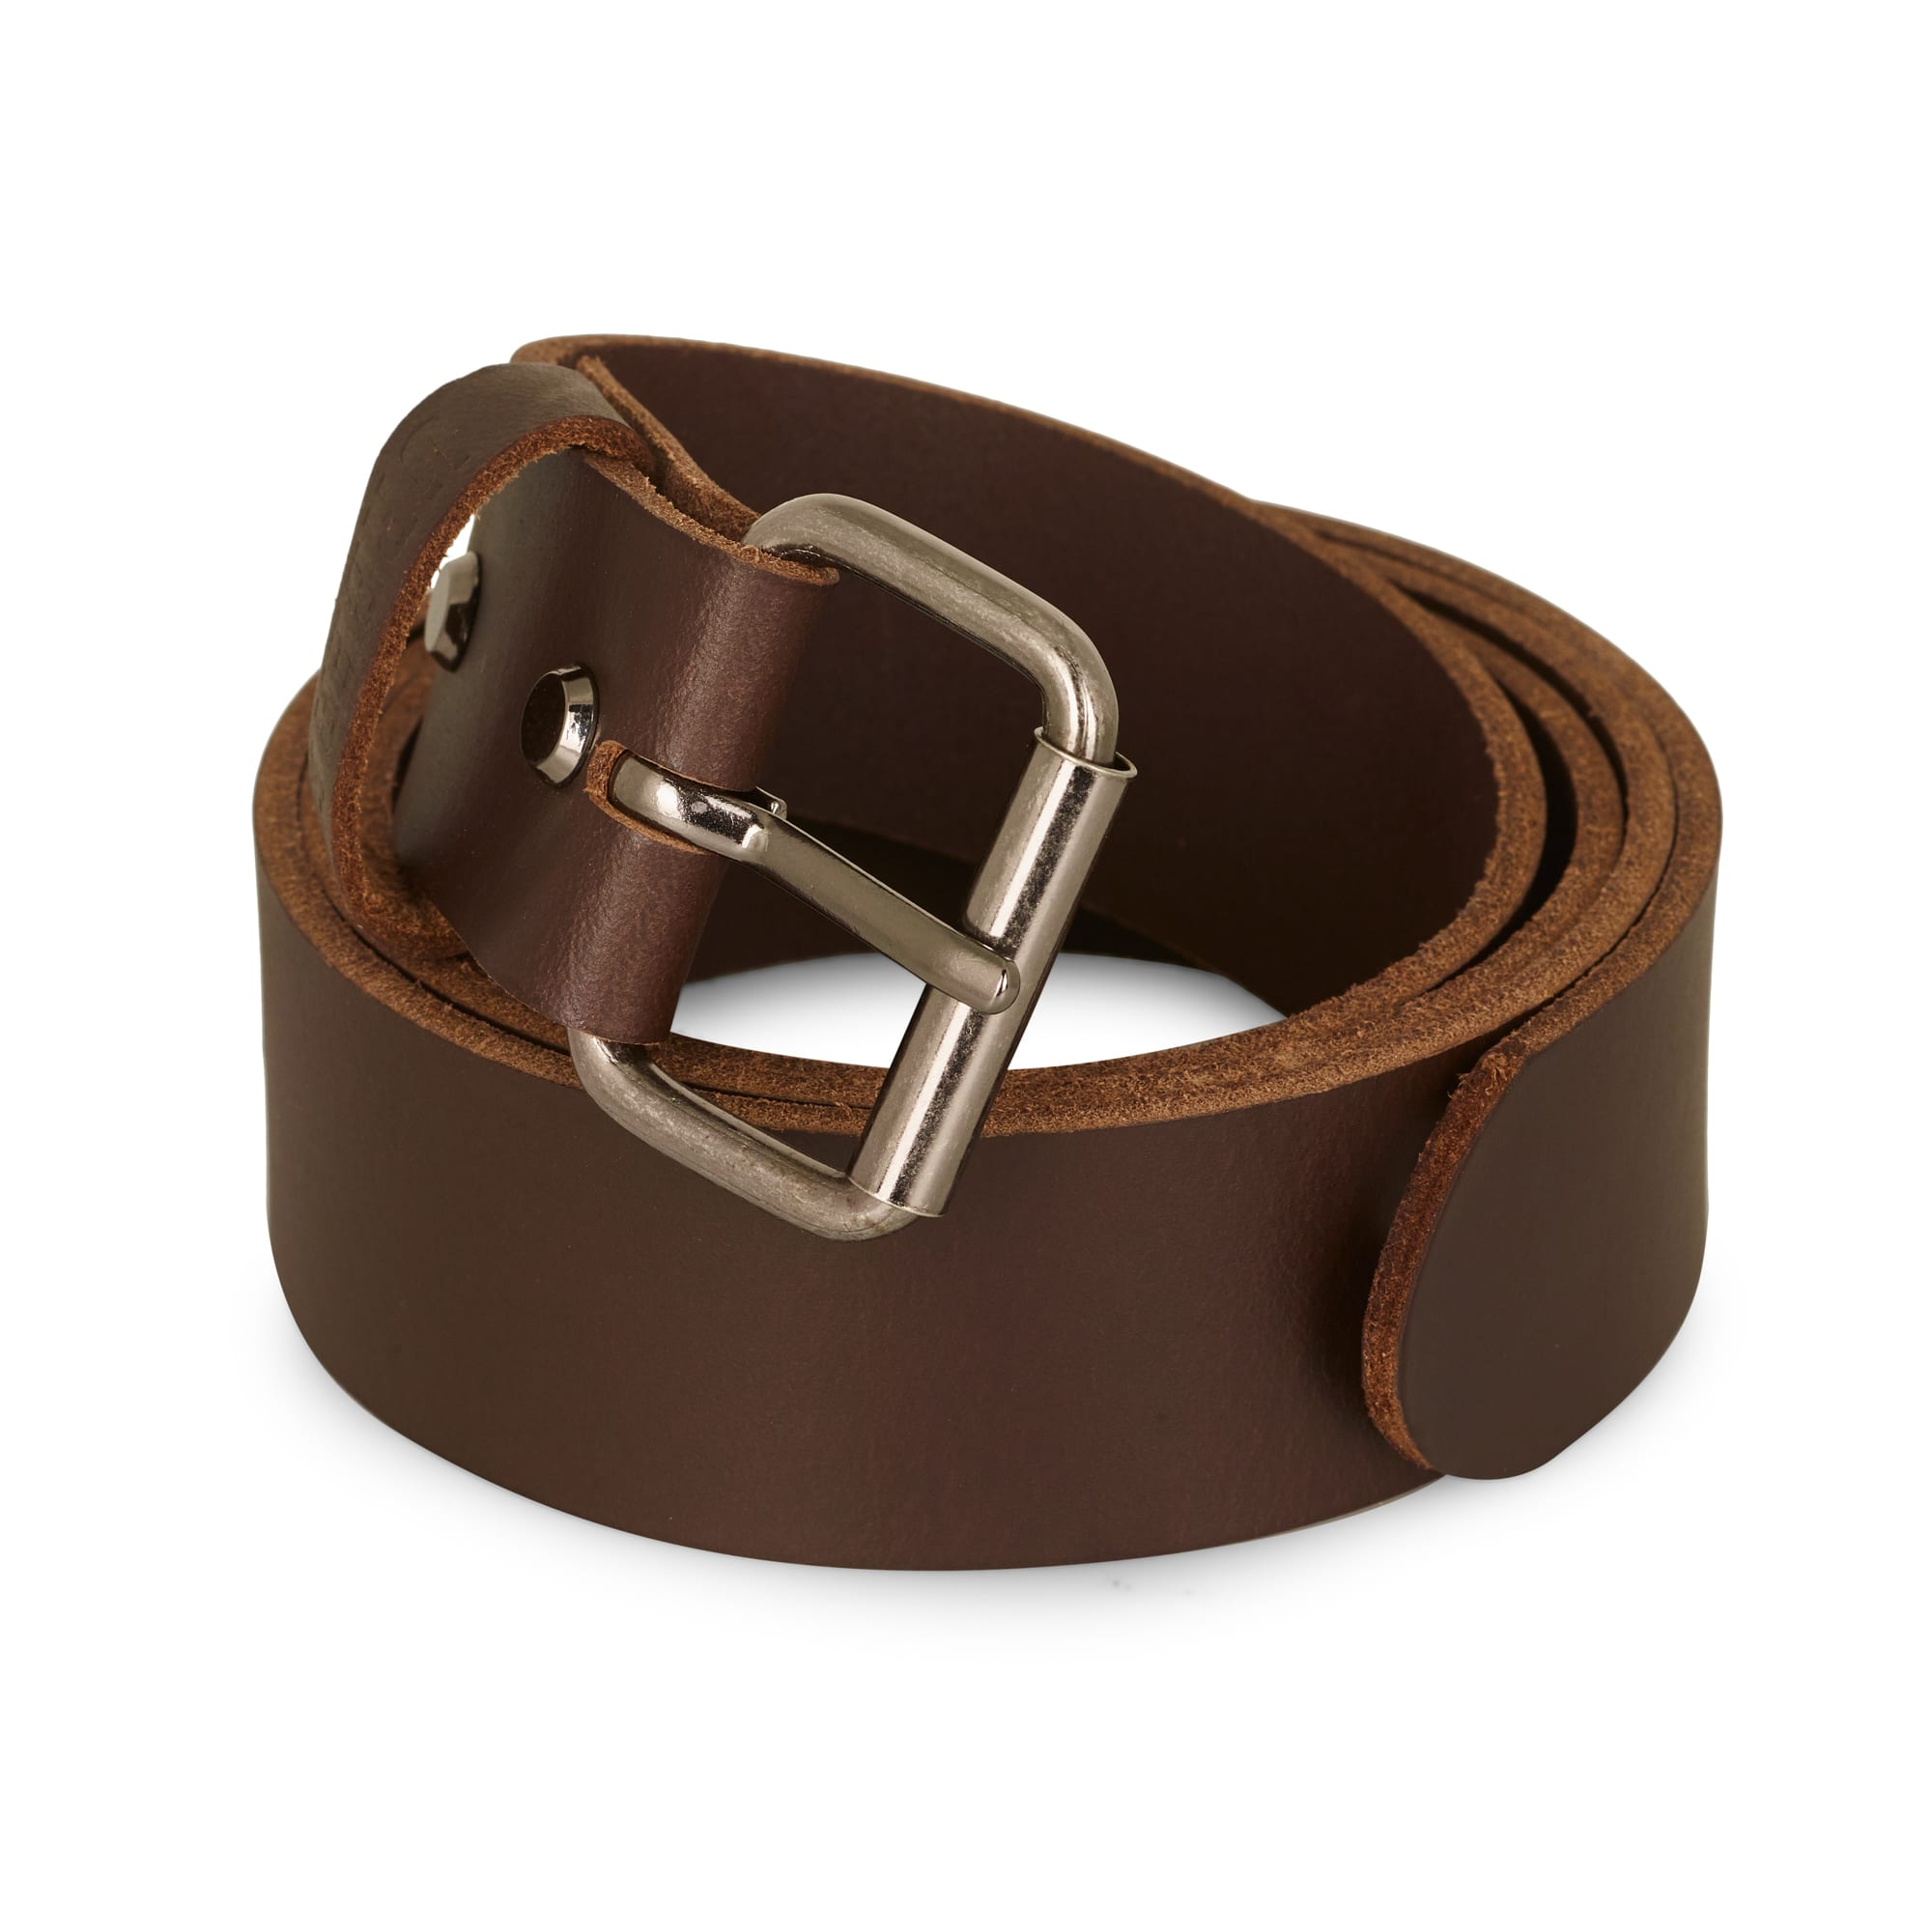 Buy Urberg Leather Belt from Outnorth